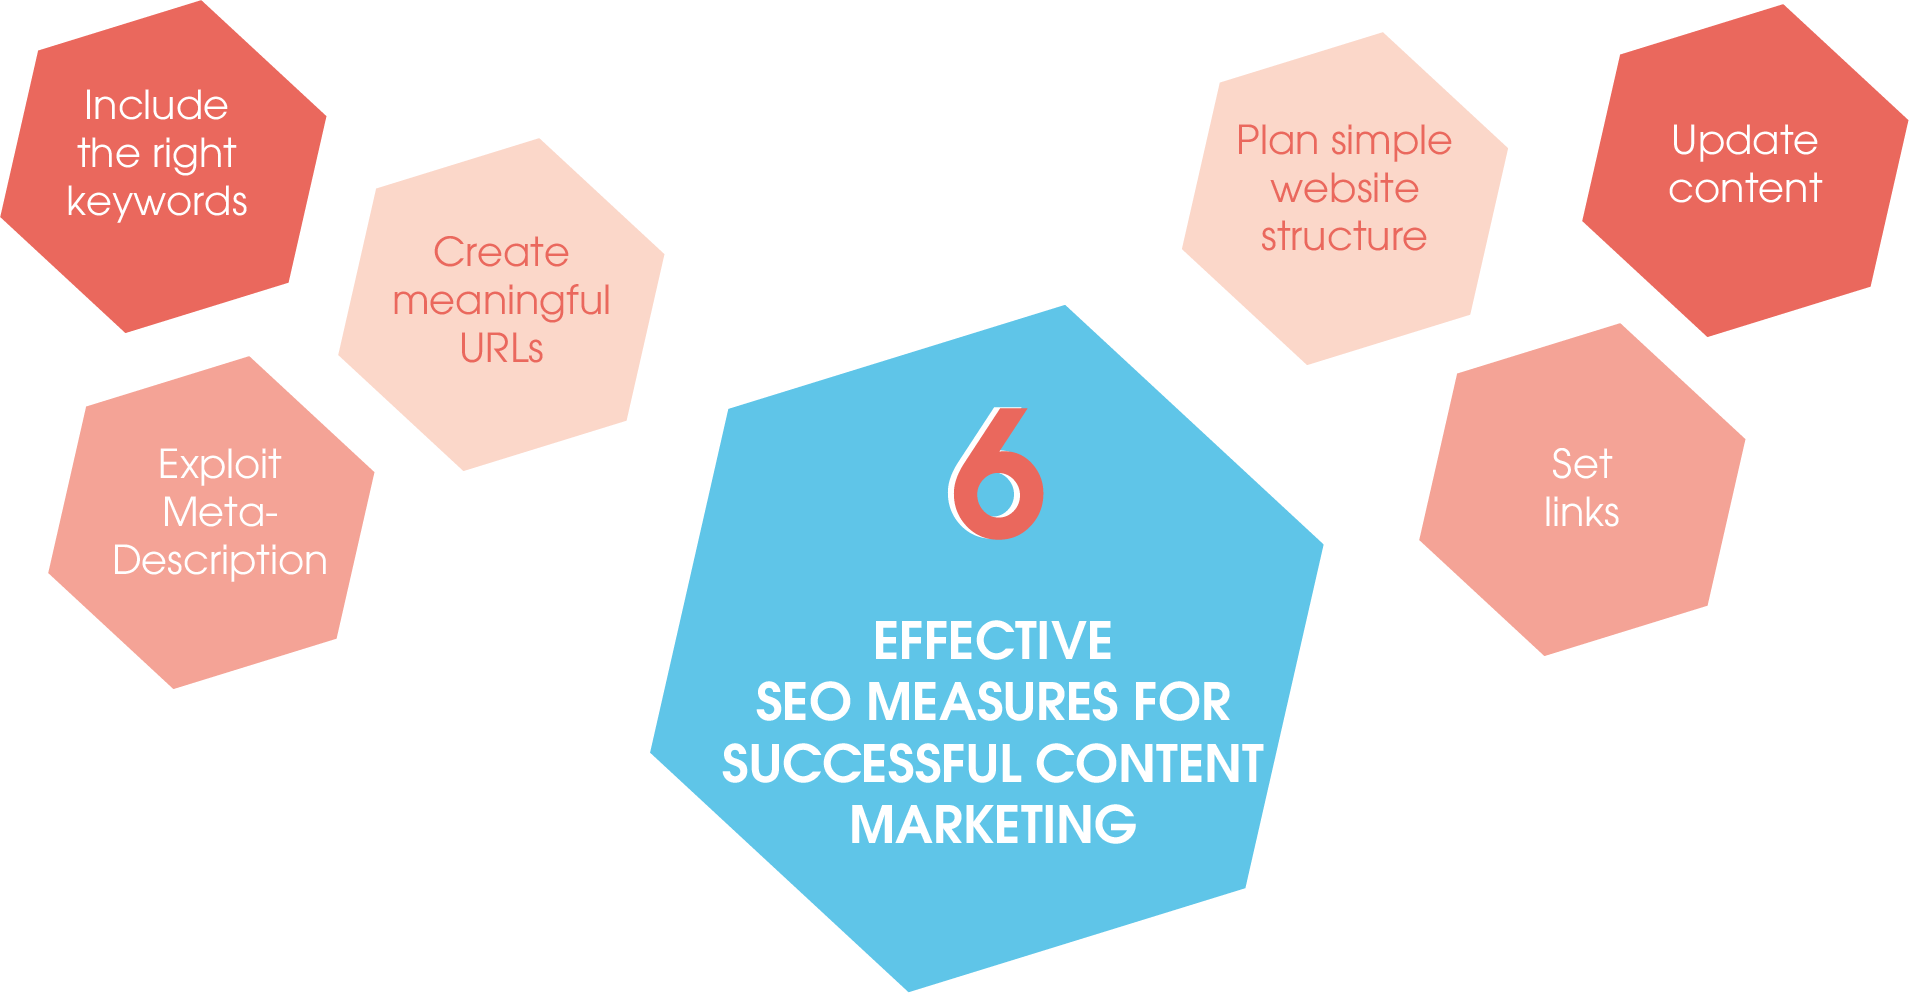 The six effective SEO measures that make your content marketing a success at a glance